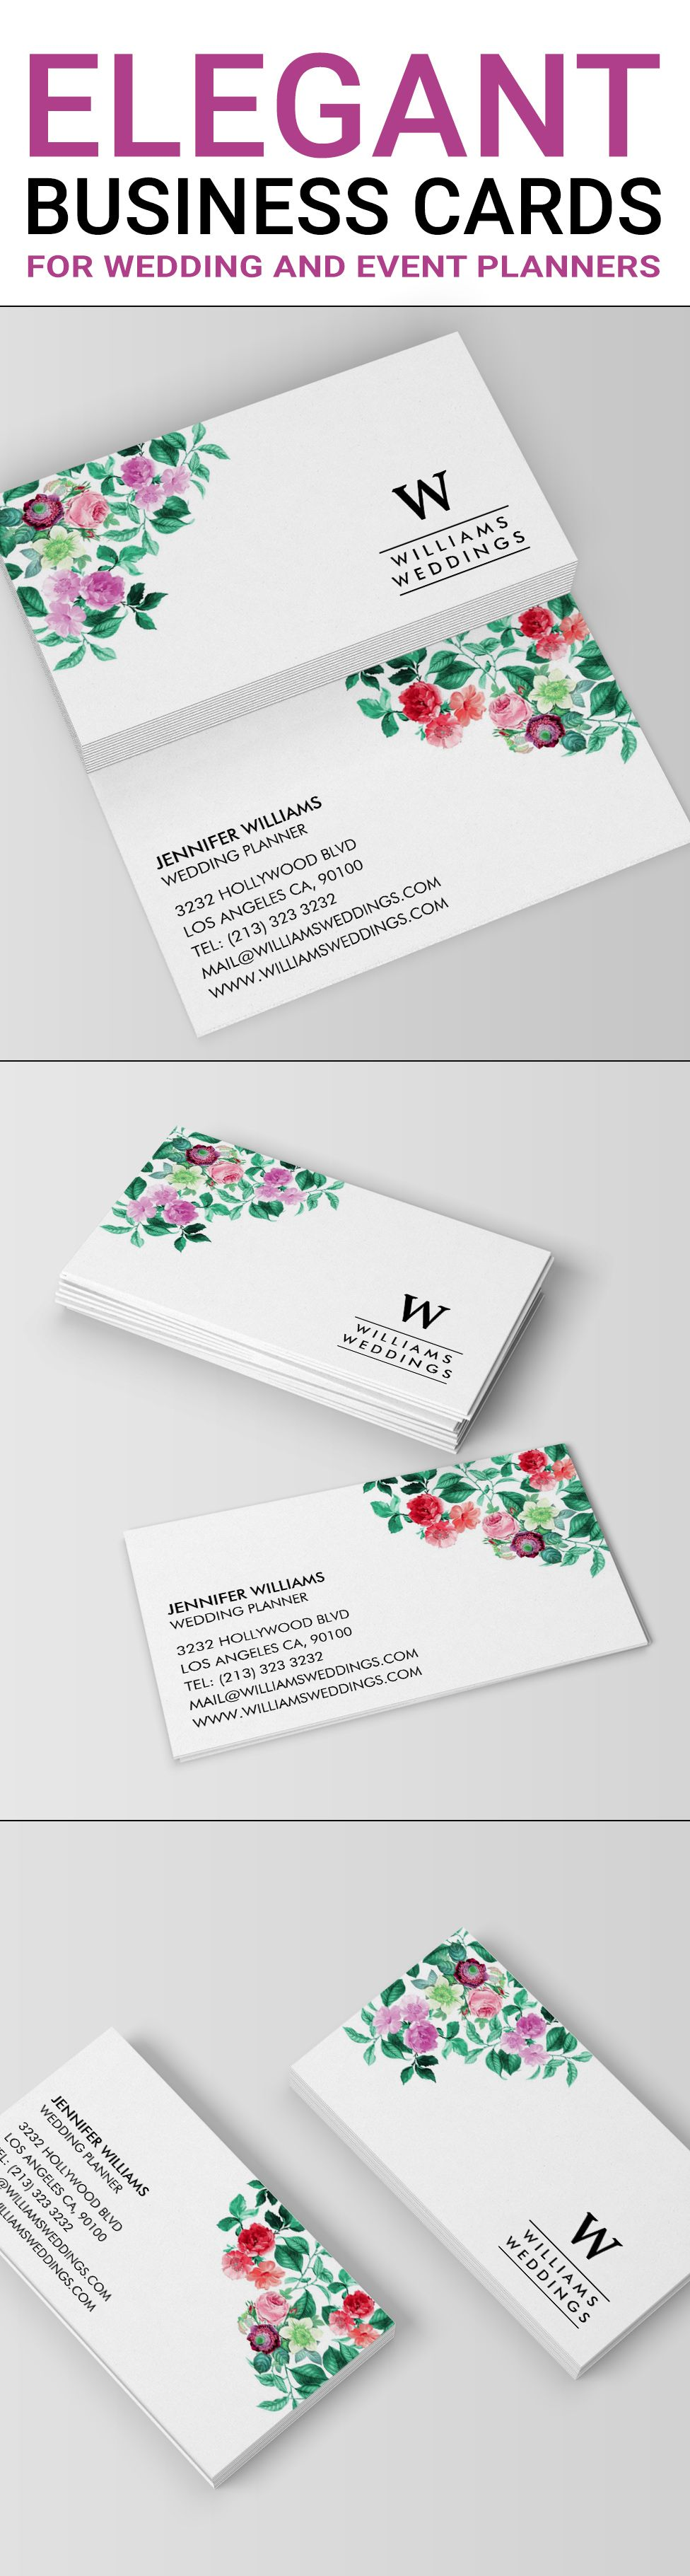 Elegant Business Cards For Wedding Planners And Event Planners The Floral Business Card Event Planner Business Card Business Card Design Floral Business Cards